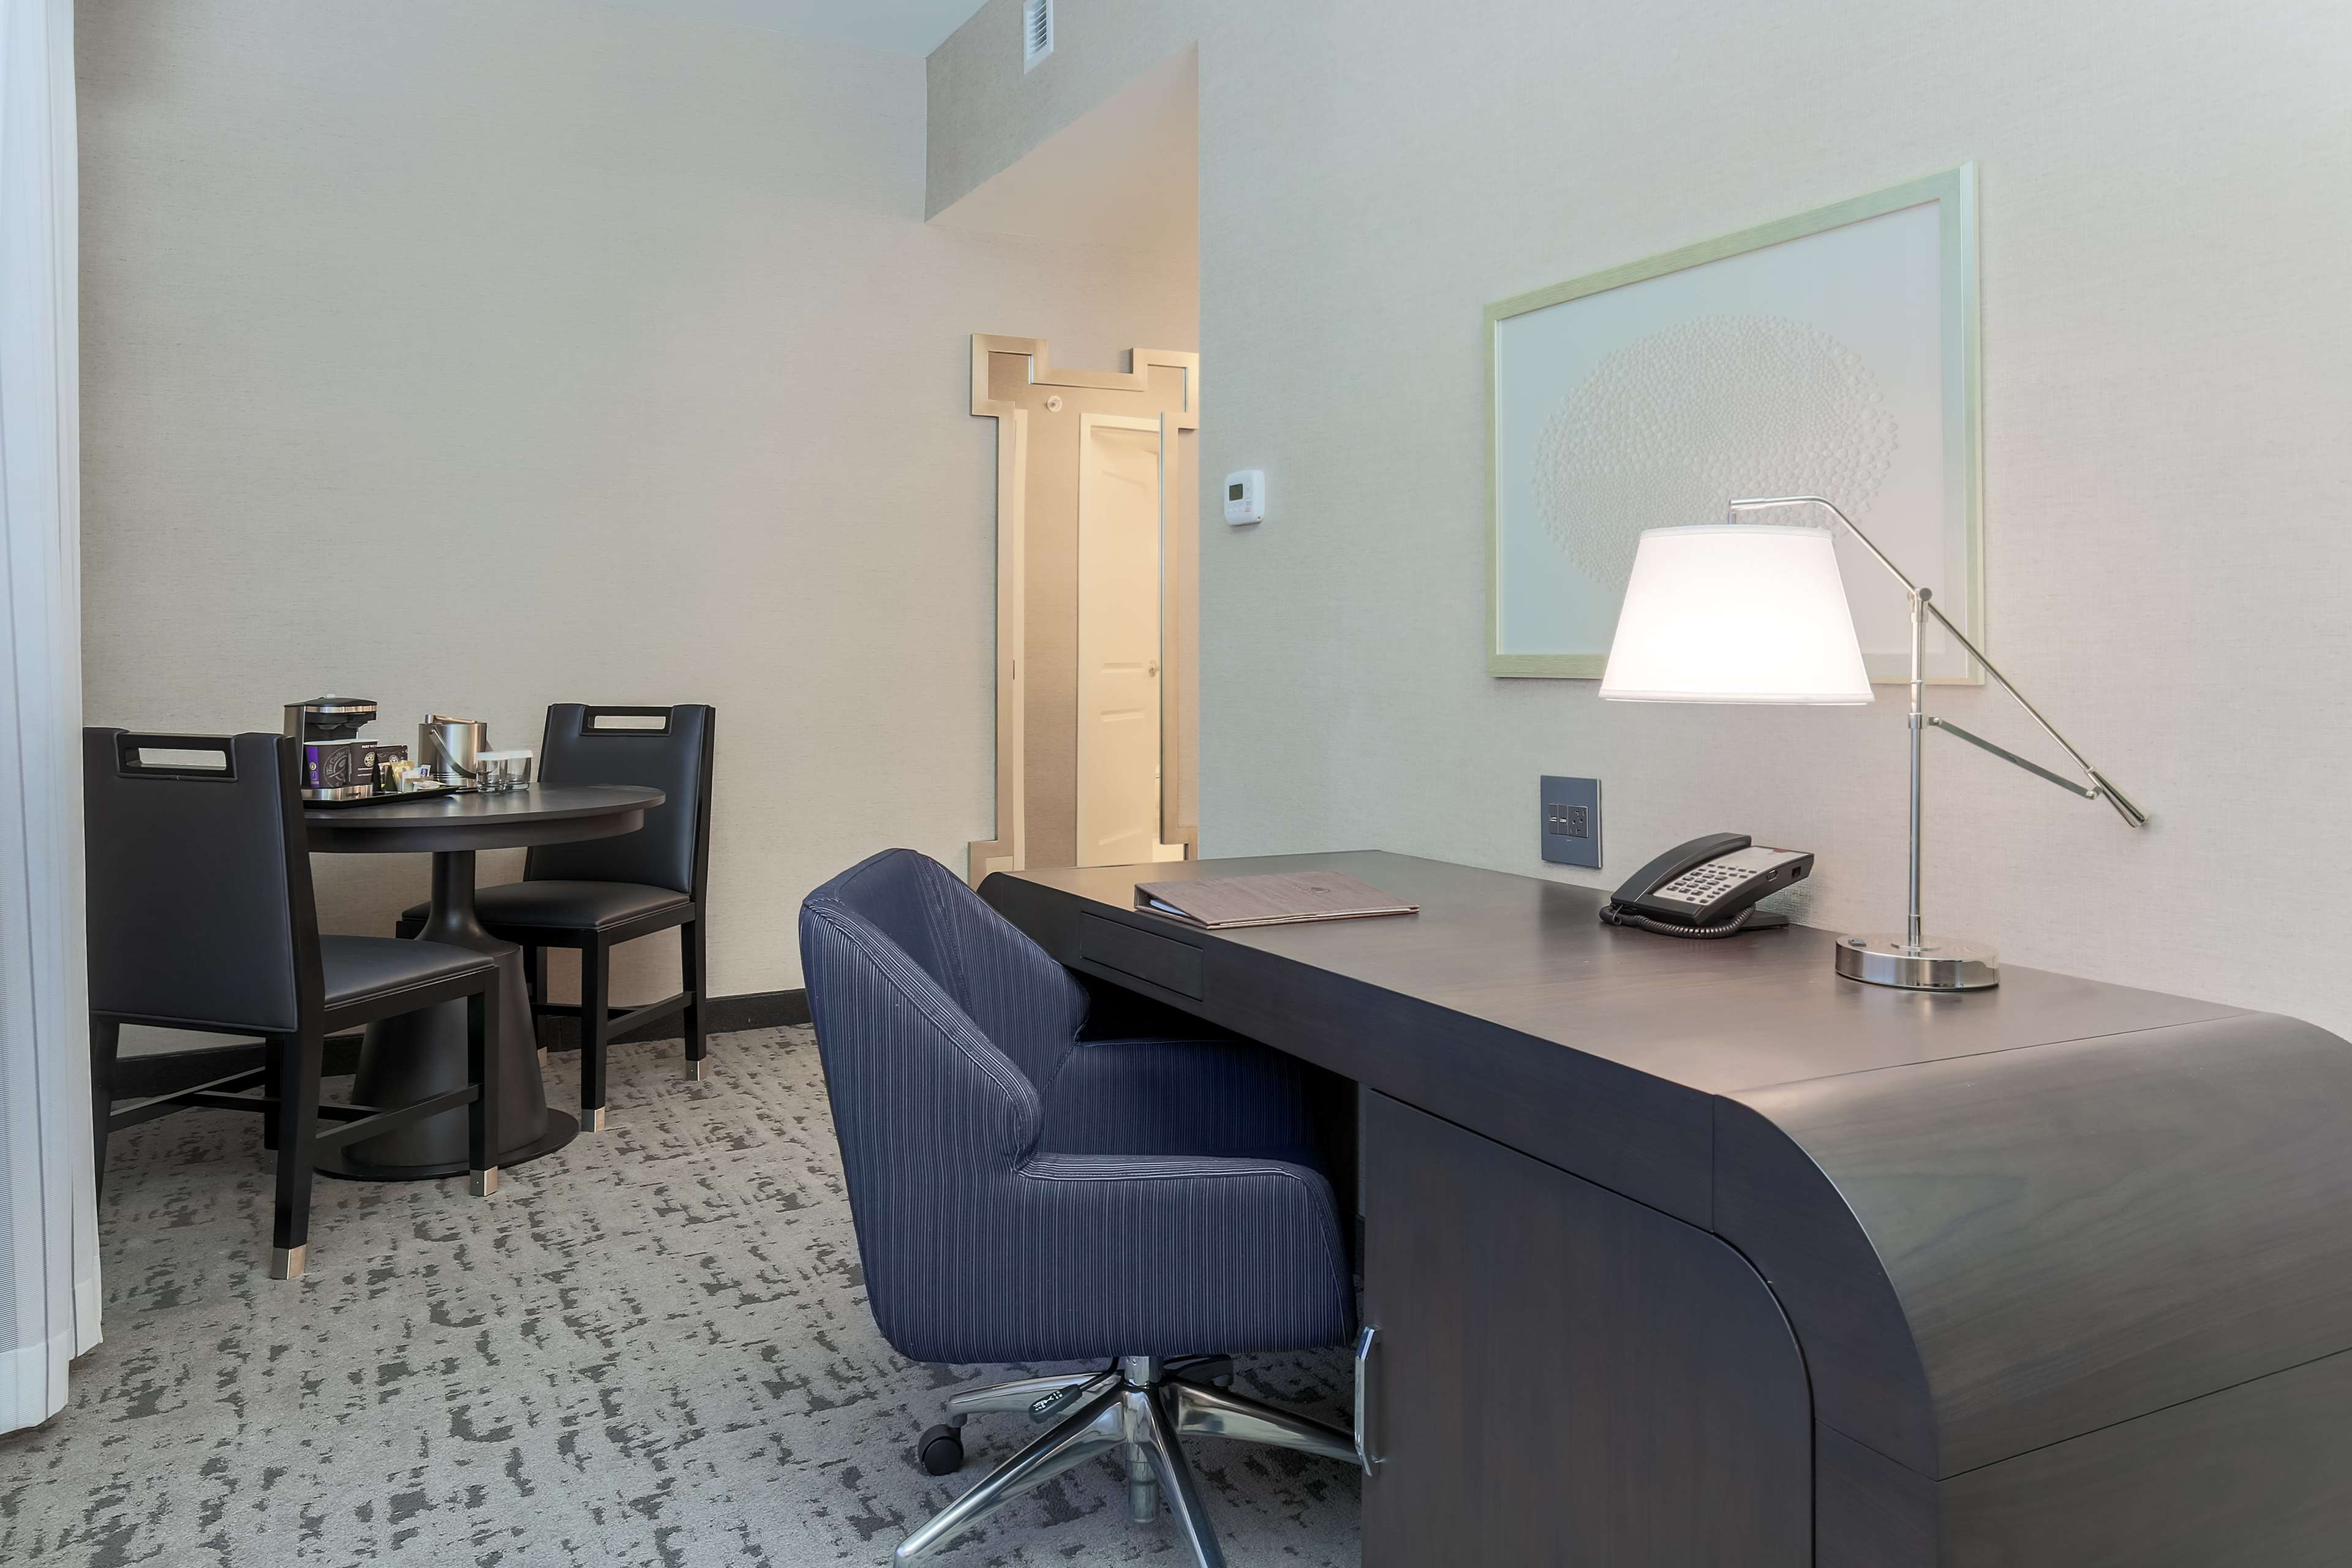 DoubleTree by Hilton Evansville image 36